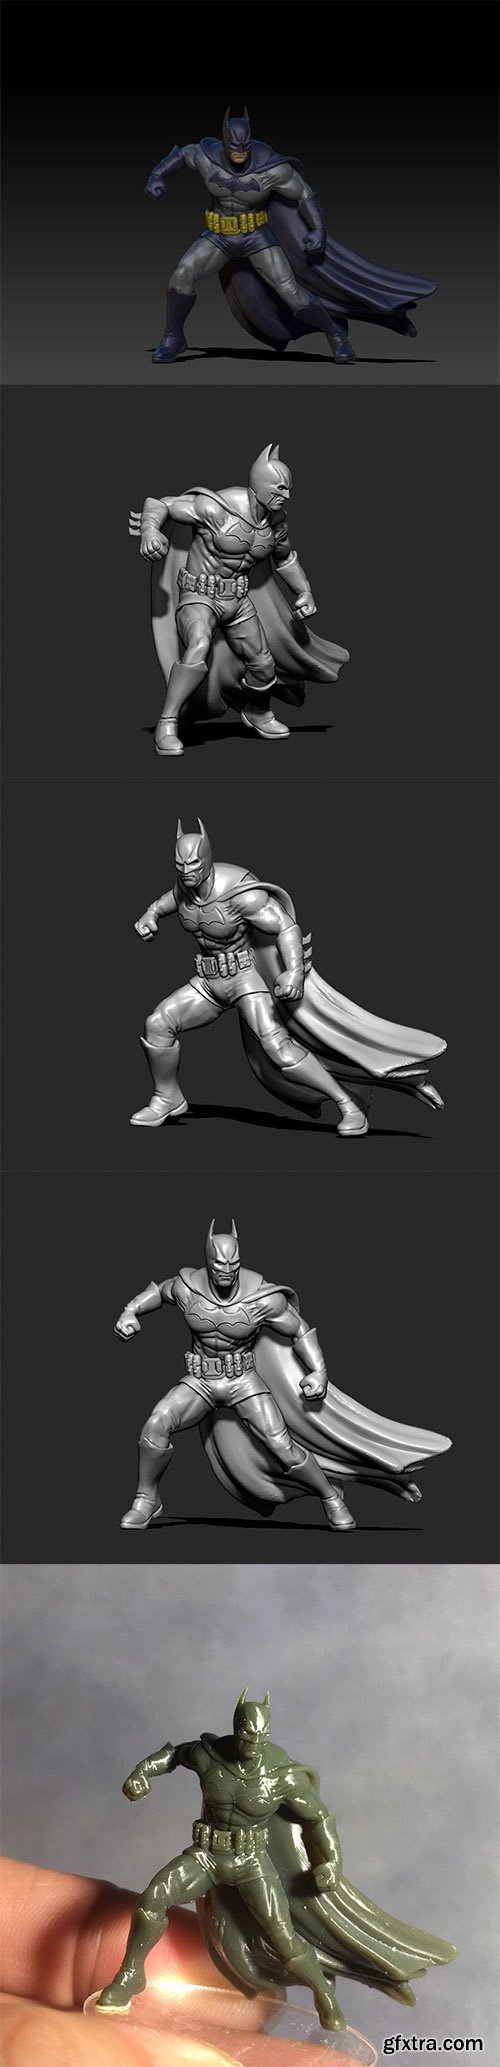 Cgtrader - Batman 3D print model